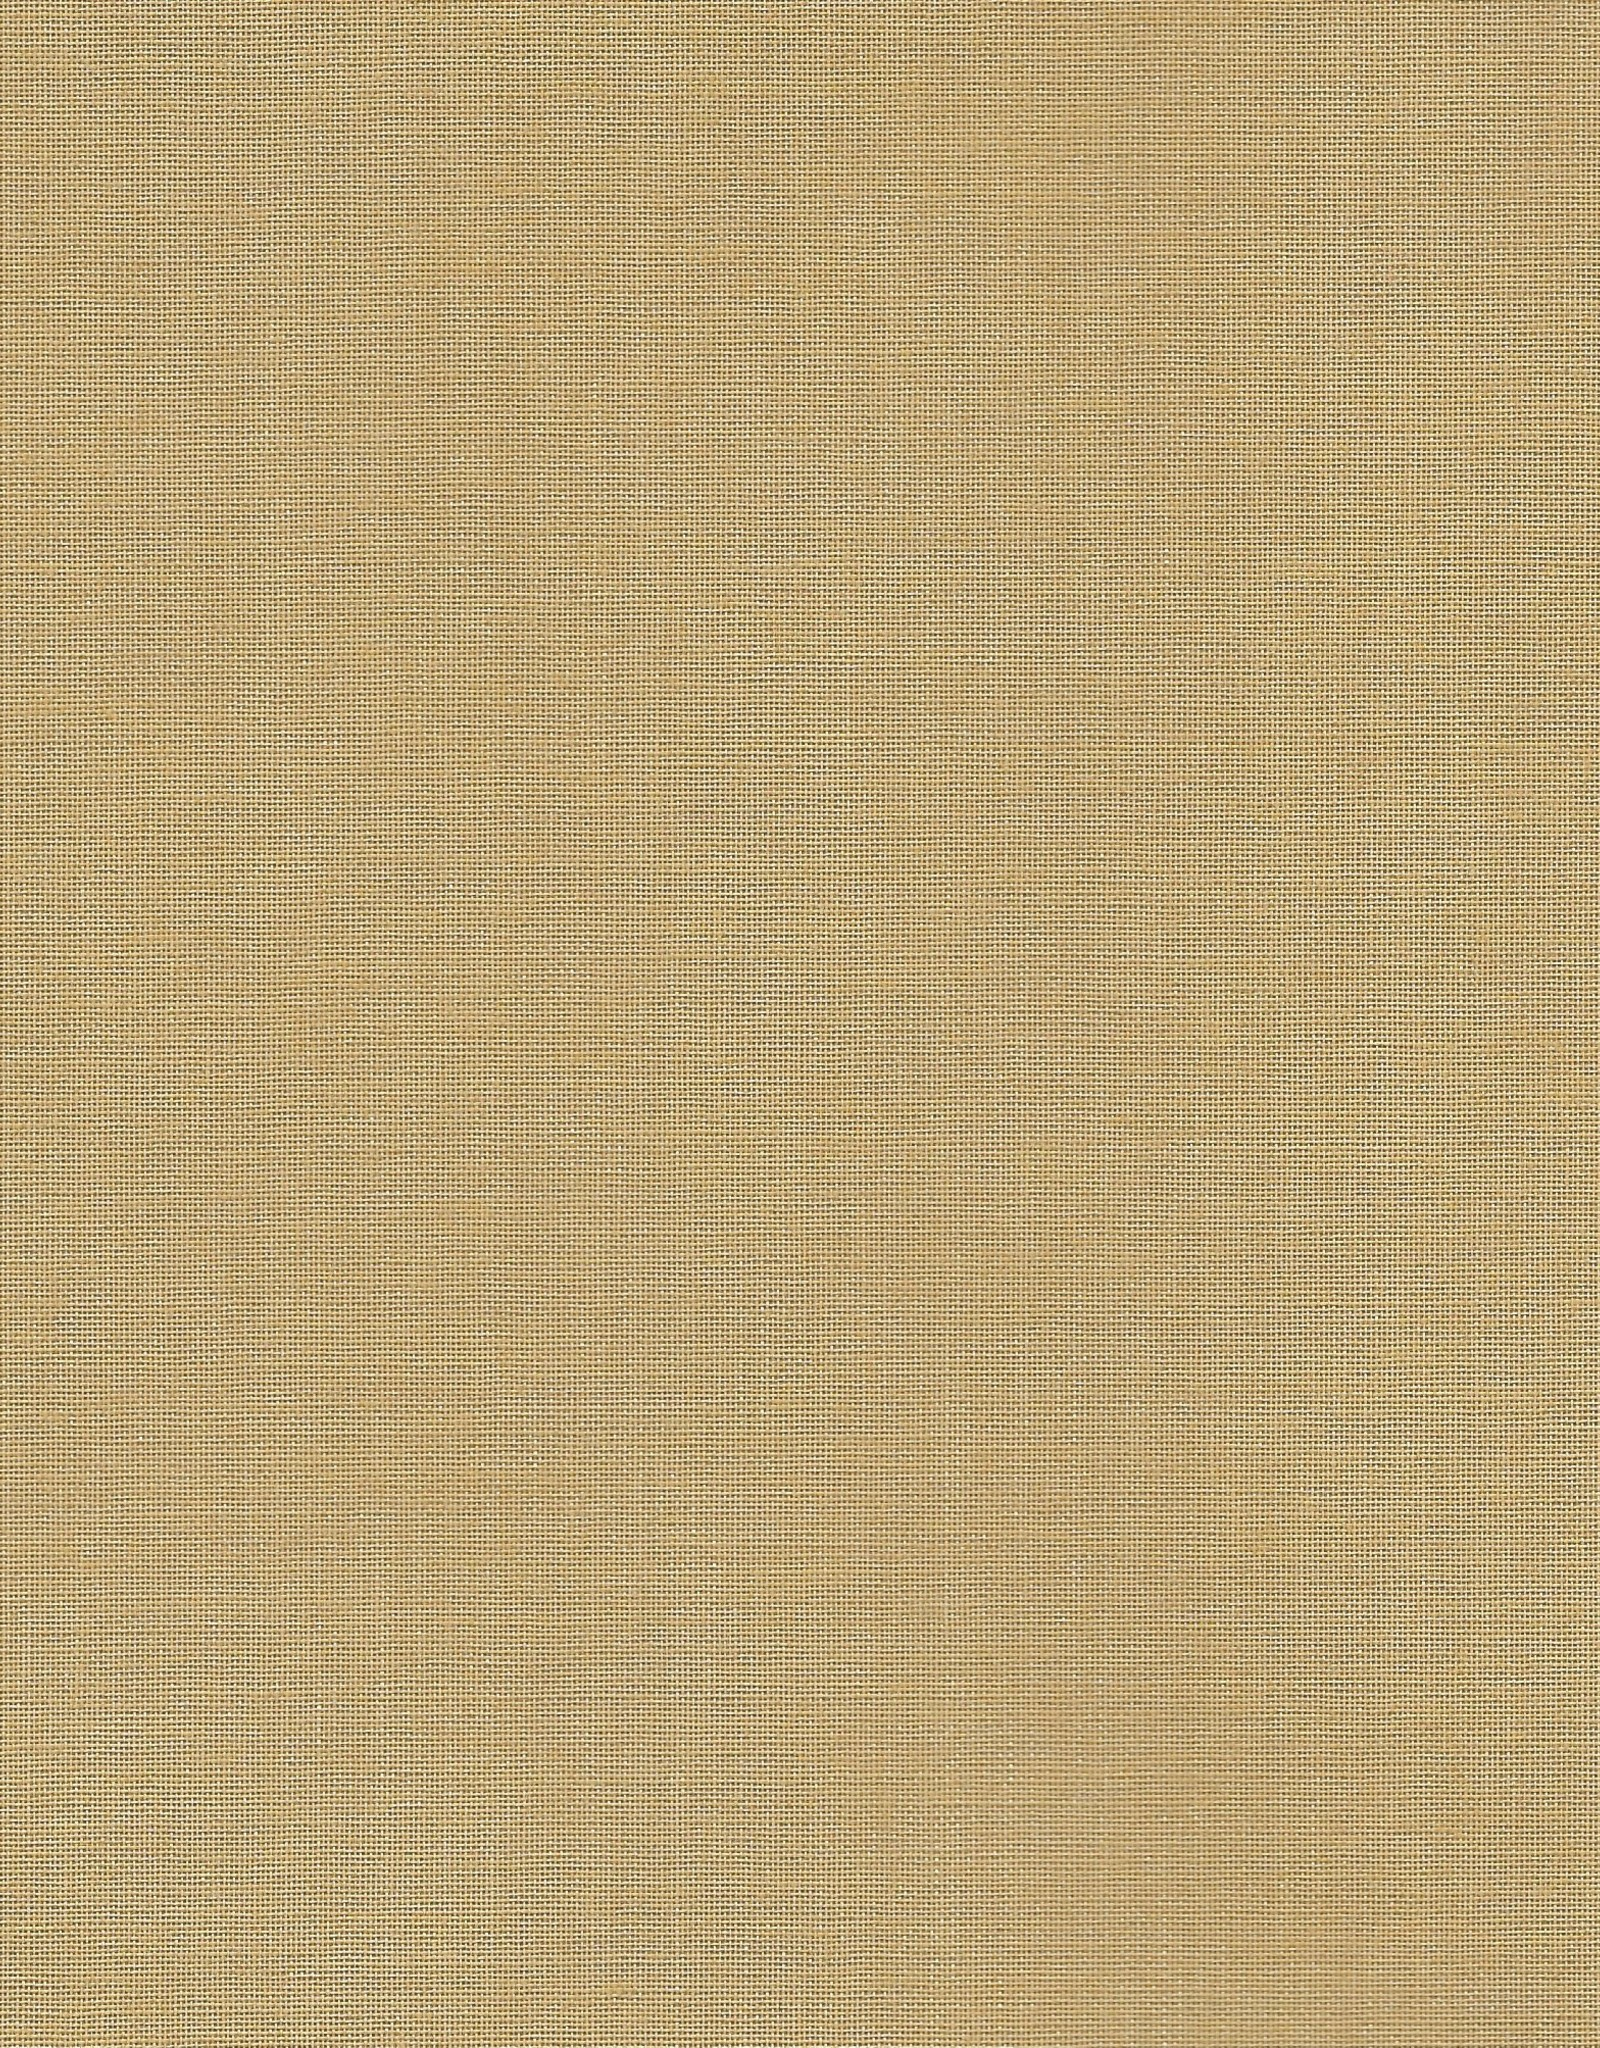 "Book Cloth Light Beige, 17"" x 19"", 1 Sheet, Acid-Free, 100% Rayon, Paper Backed"